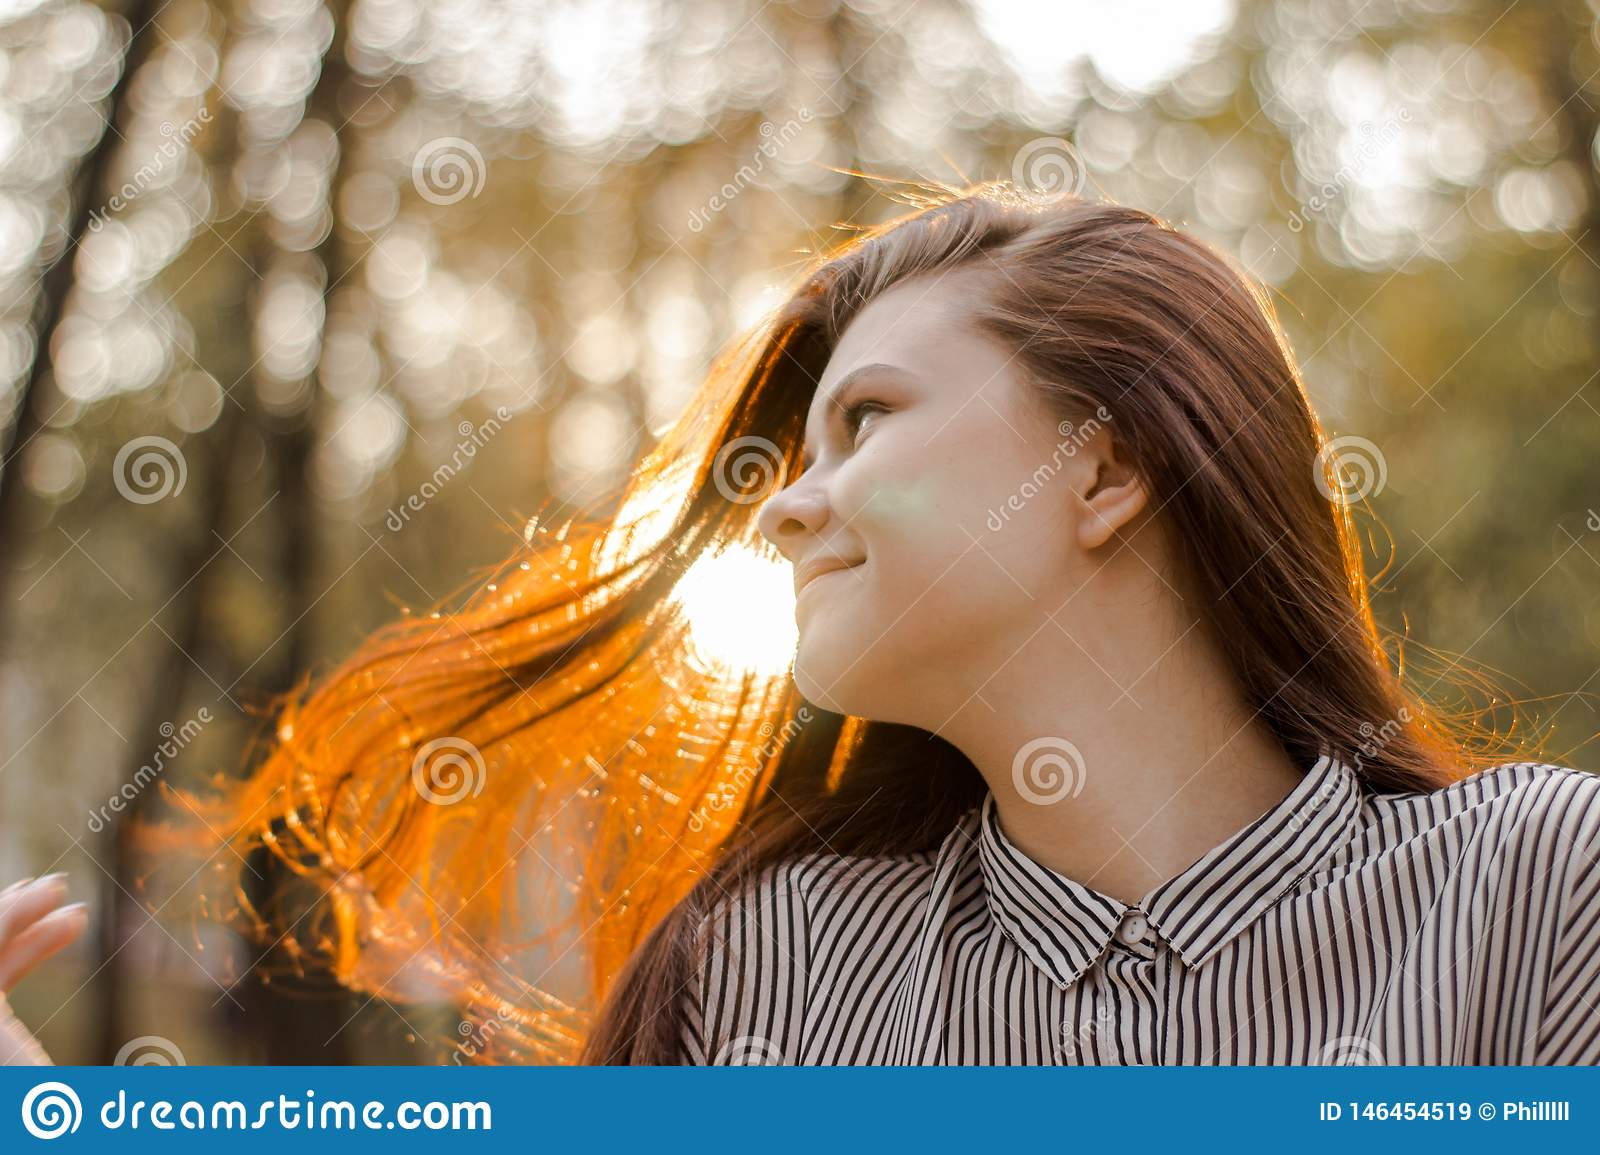 Portrait of a brown-haired girl whose sunset sunlight shimmers in her hair